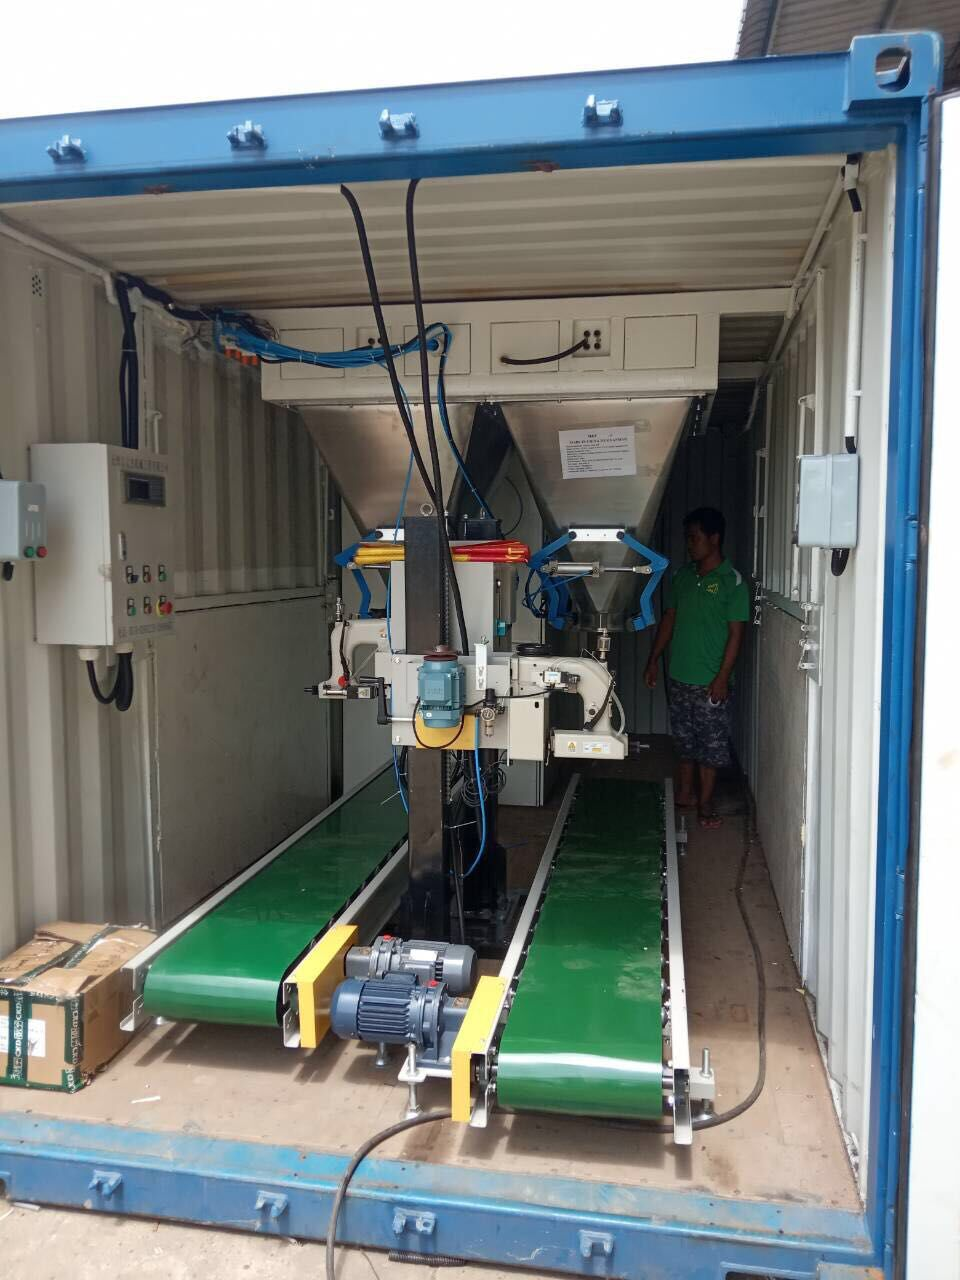 MOBILE BAGGING MACHINES containerized bagging system Containerised bagging system Mobile Bagging Unit MOBILE BAGGING MACHINES for Grains, pulses, iodised salts, sugar